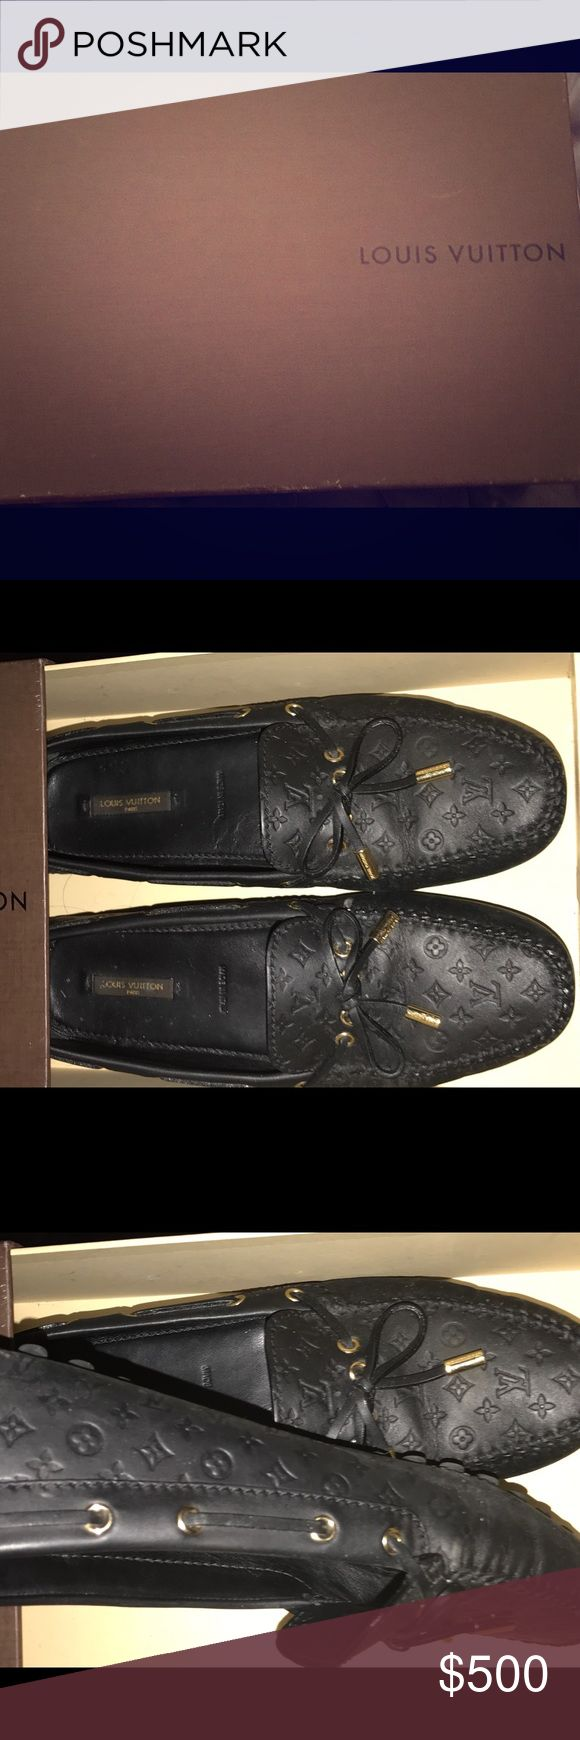 Louis Vuitton 100% authentic leather loafers Louis Vuitton 100% authentic leather loafers (worn a few times) Louis Vuitton Shoes Flats & Loafers